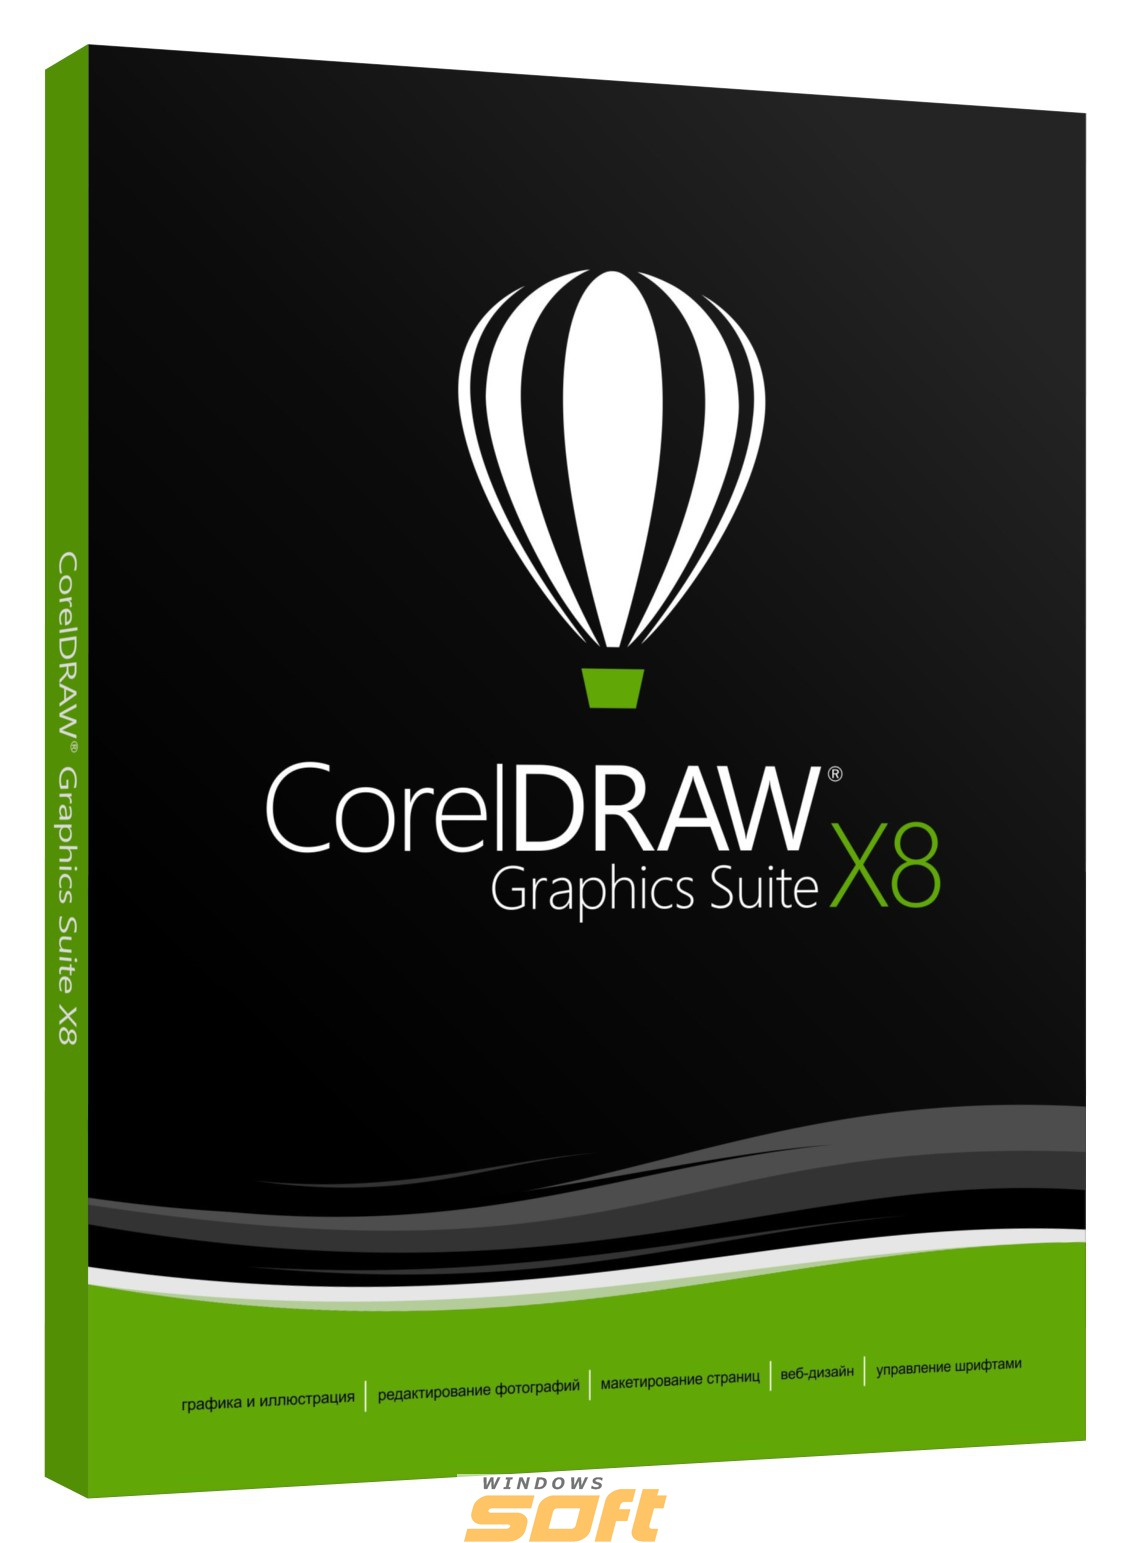 Купить CorelDRAW Graphics Suite X8 Small Business Edition Russian CDGSX8RUDPSBE по доступной цене